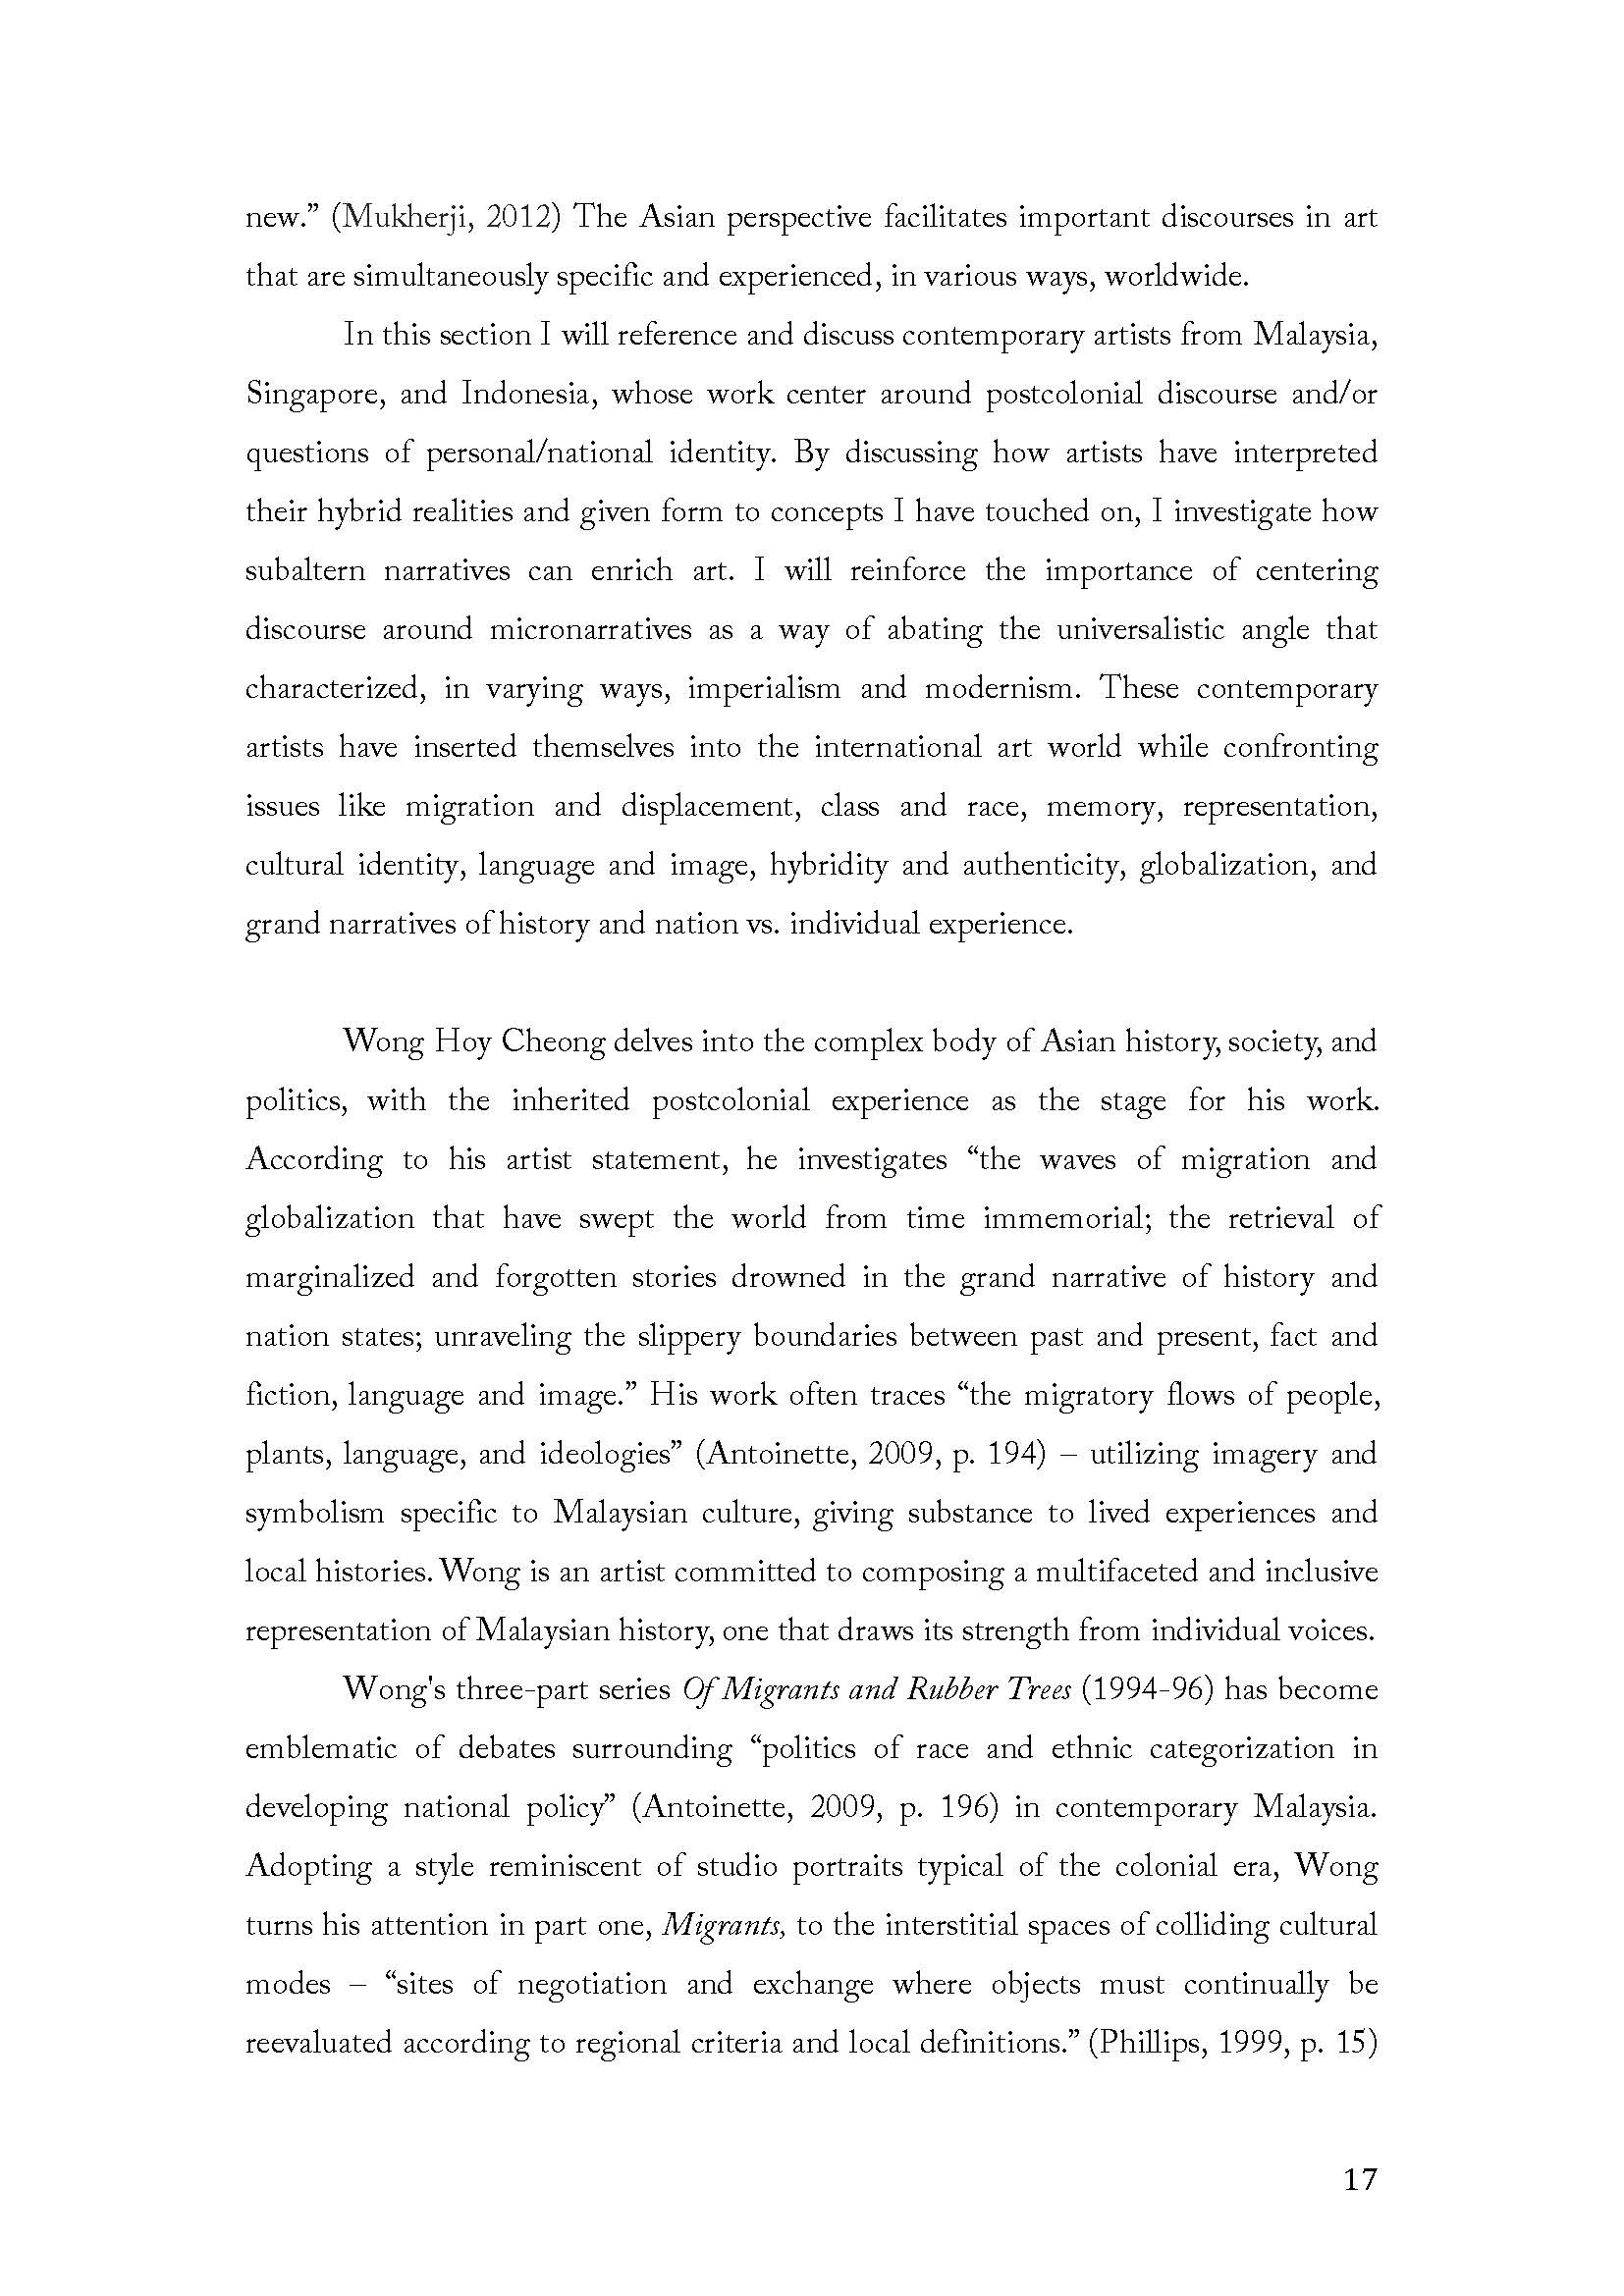 dissertationdraft2quoted_Page_17-min_1654